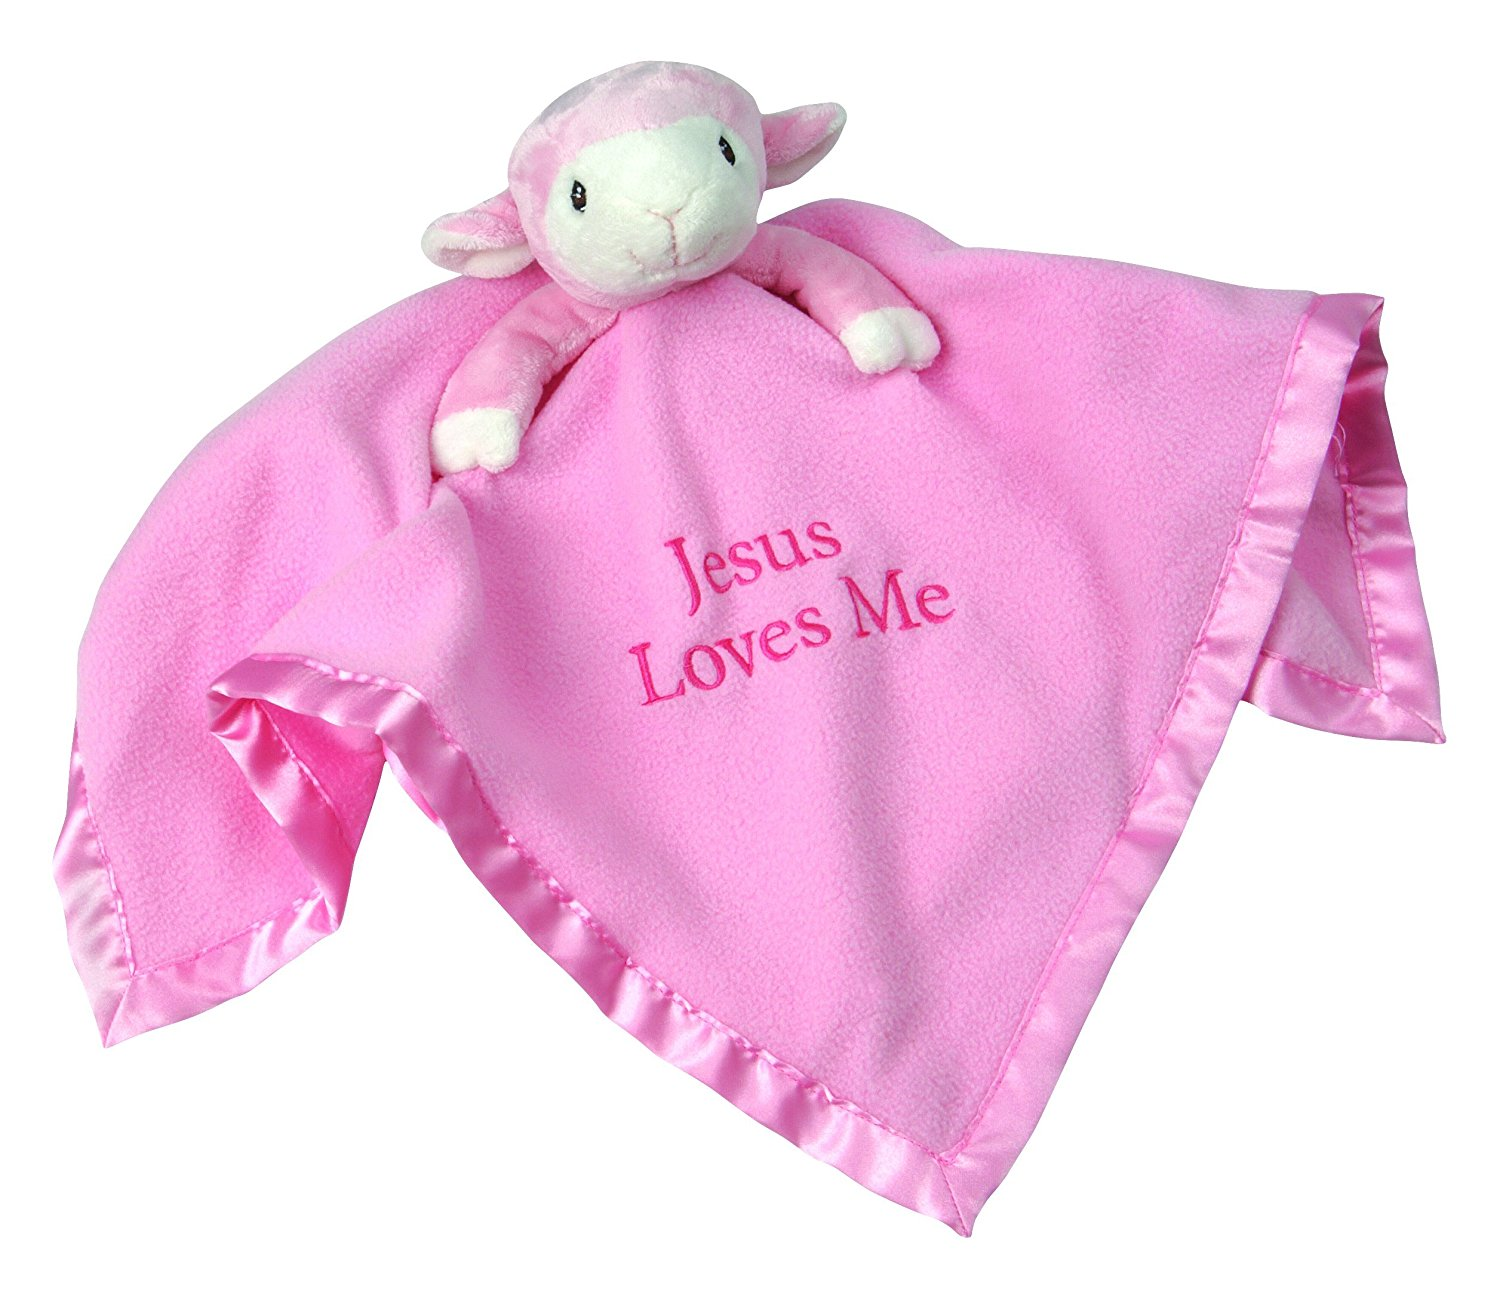 , Pink Lamb, Stuffed Animal and Blanket, 102502 By Precious Moments Ship from US by Precious Moments